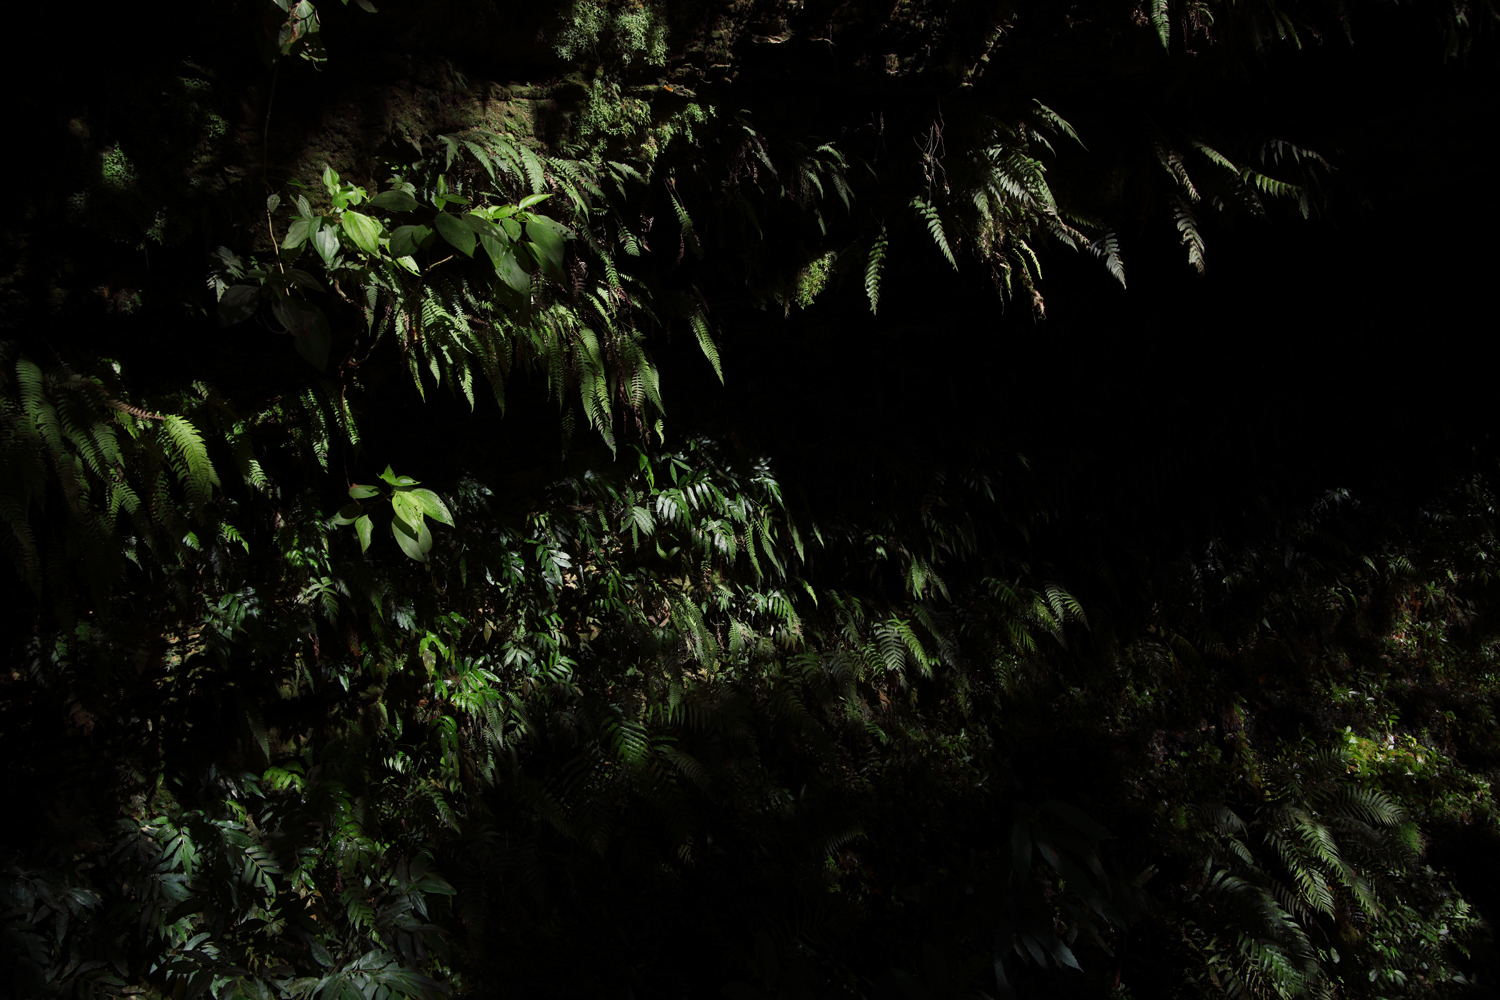 Jamaca-ferns-dark-1-copy.jpg